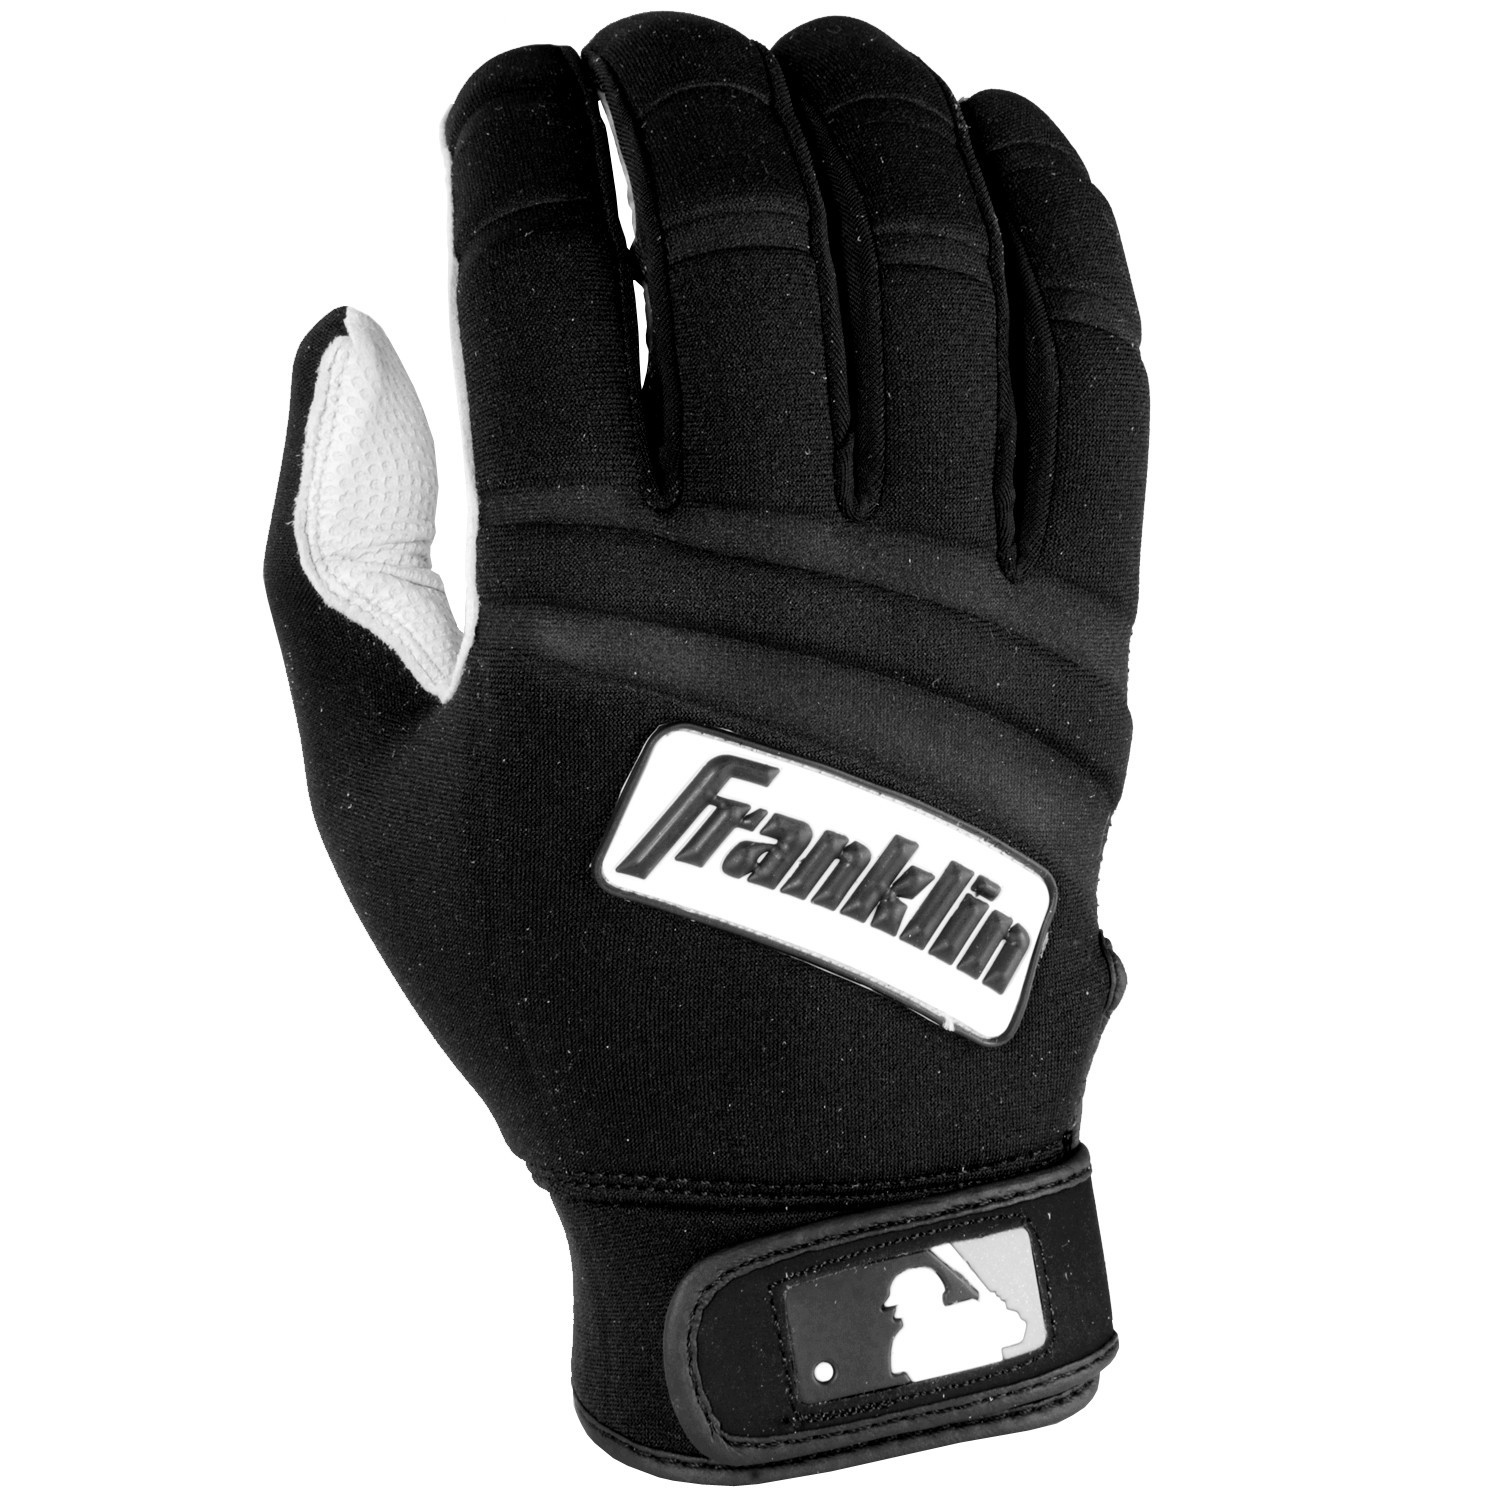 Franklin Sports MLB Adult Cold Weather Batting Glove Pearl/Black Medium PartNumber: 00605806000P KsnValue: 2301590 MfgPartNumber: 10184F2